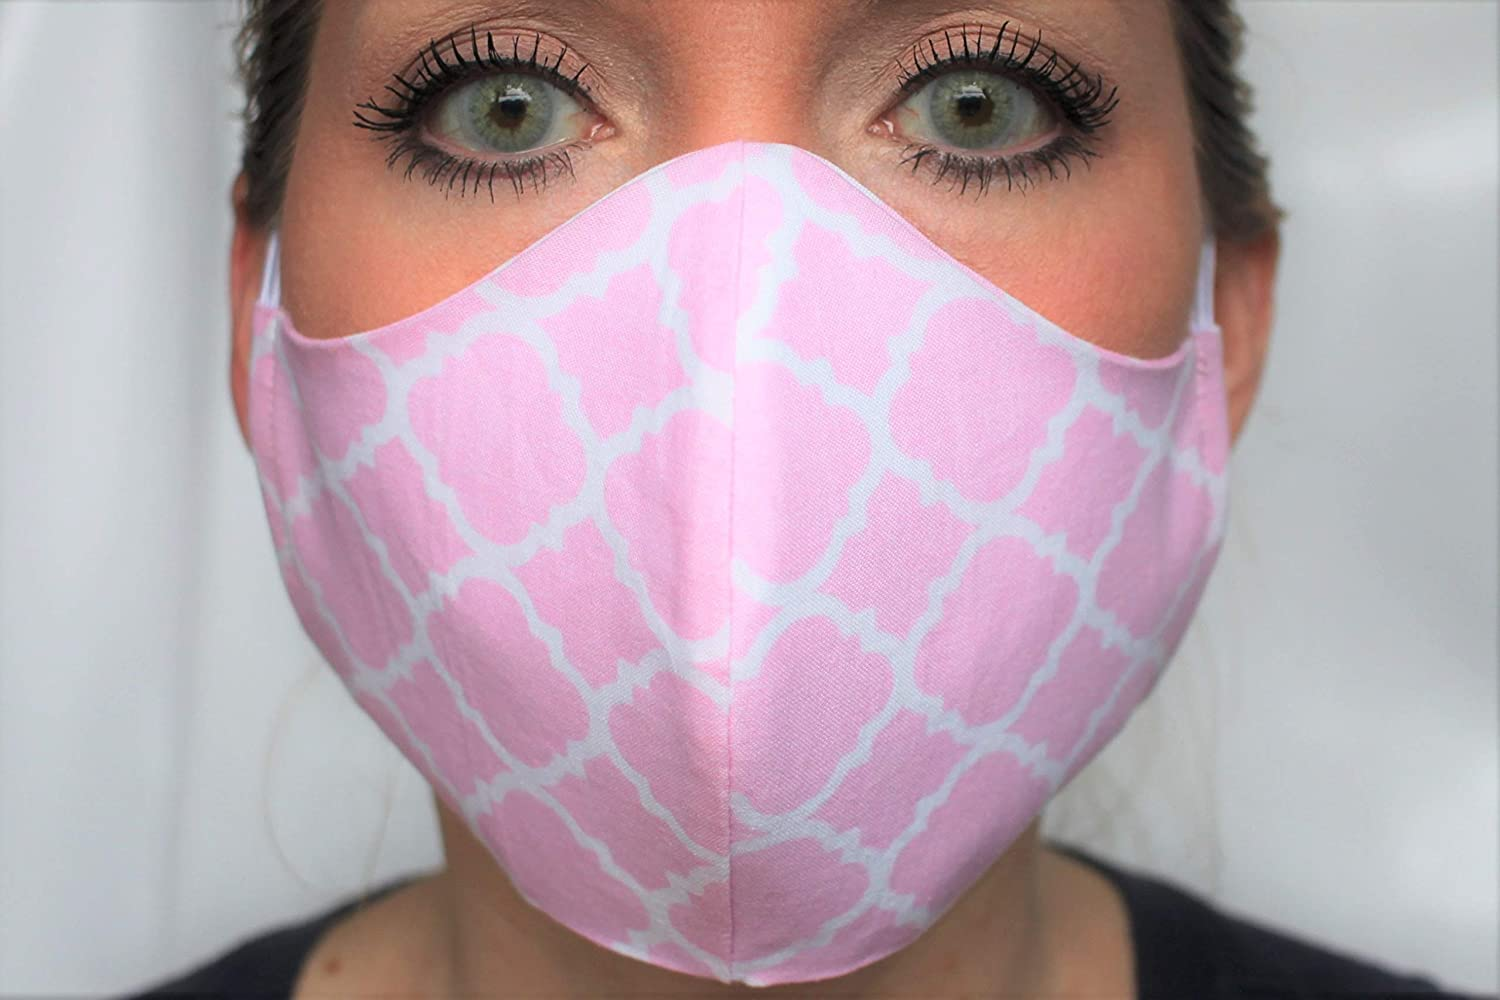 Cute Waterproof Face Mask - 3 Layer construction - Washable - Elastic Ear Loops (Peachy Pink)